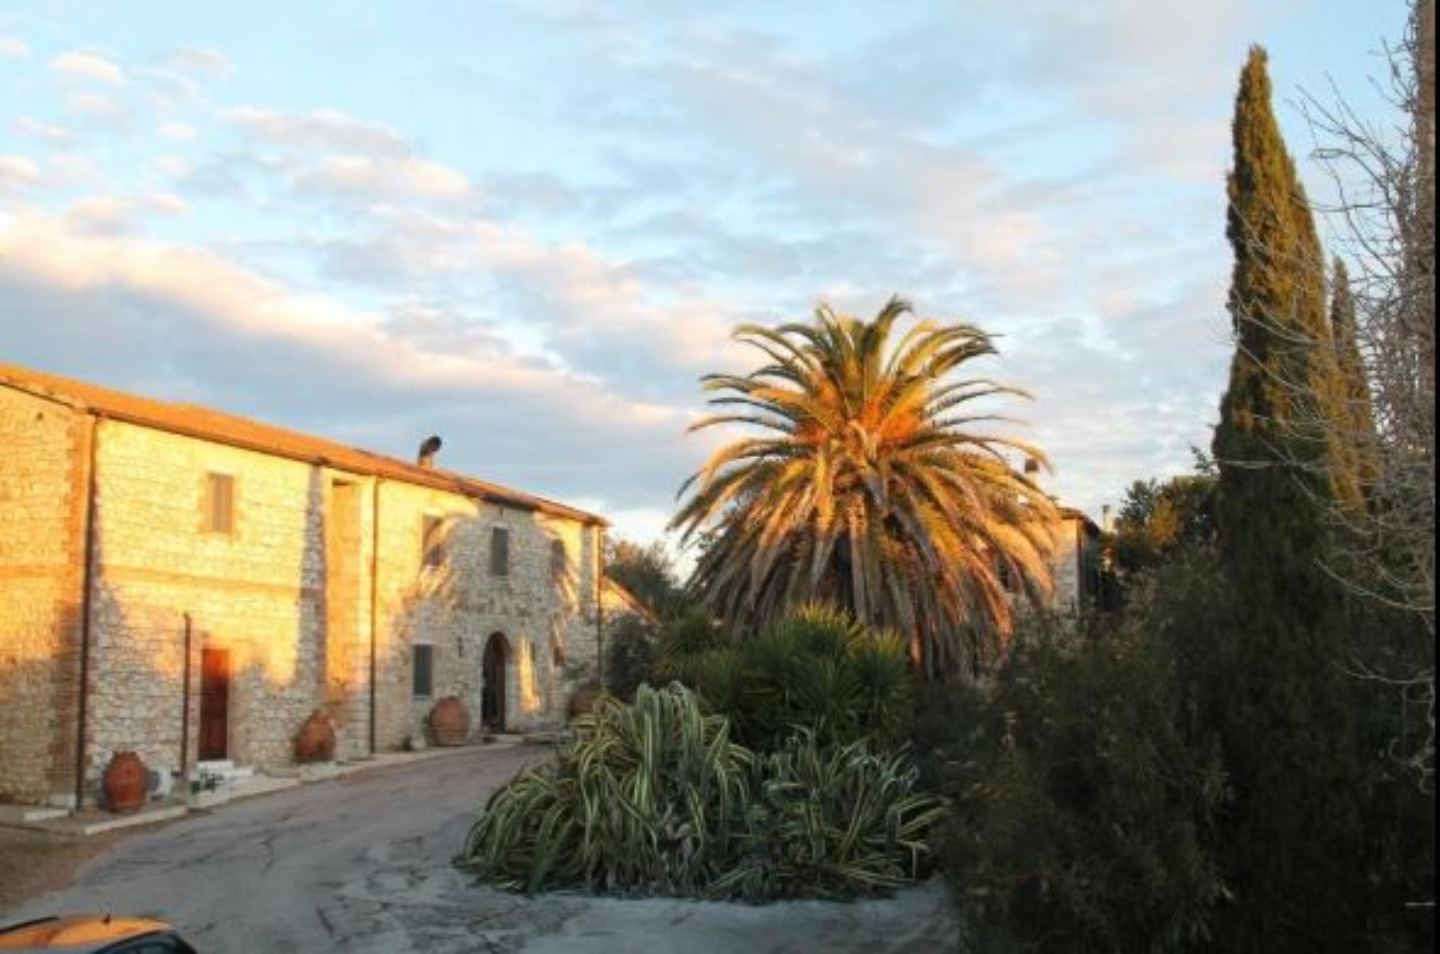 A group of palm trees with a building in the background at Agriturismo Case Cordovani.